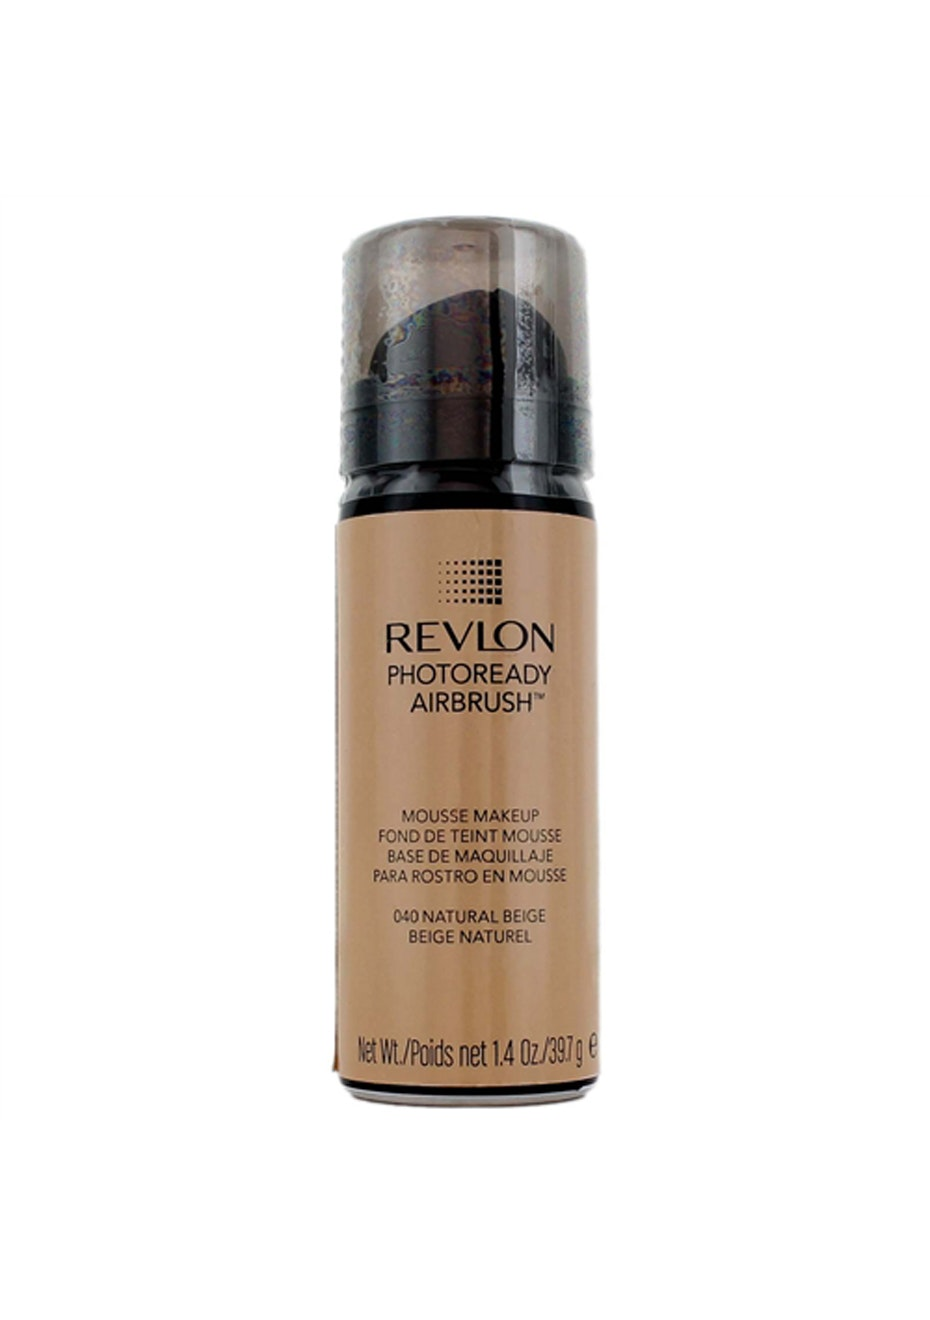 Revlon PhotoReady AirBrush Mousse Makeup 040 Natural Beige